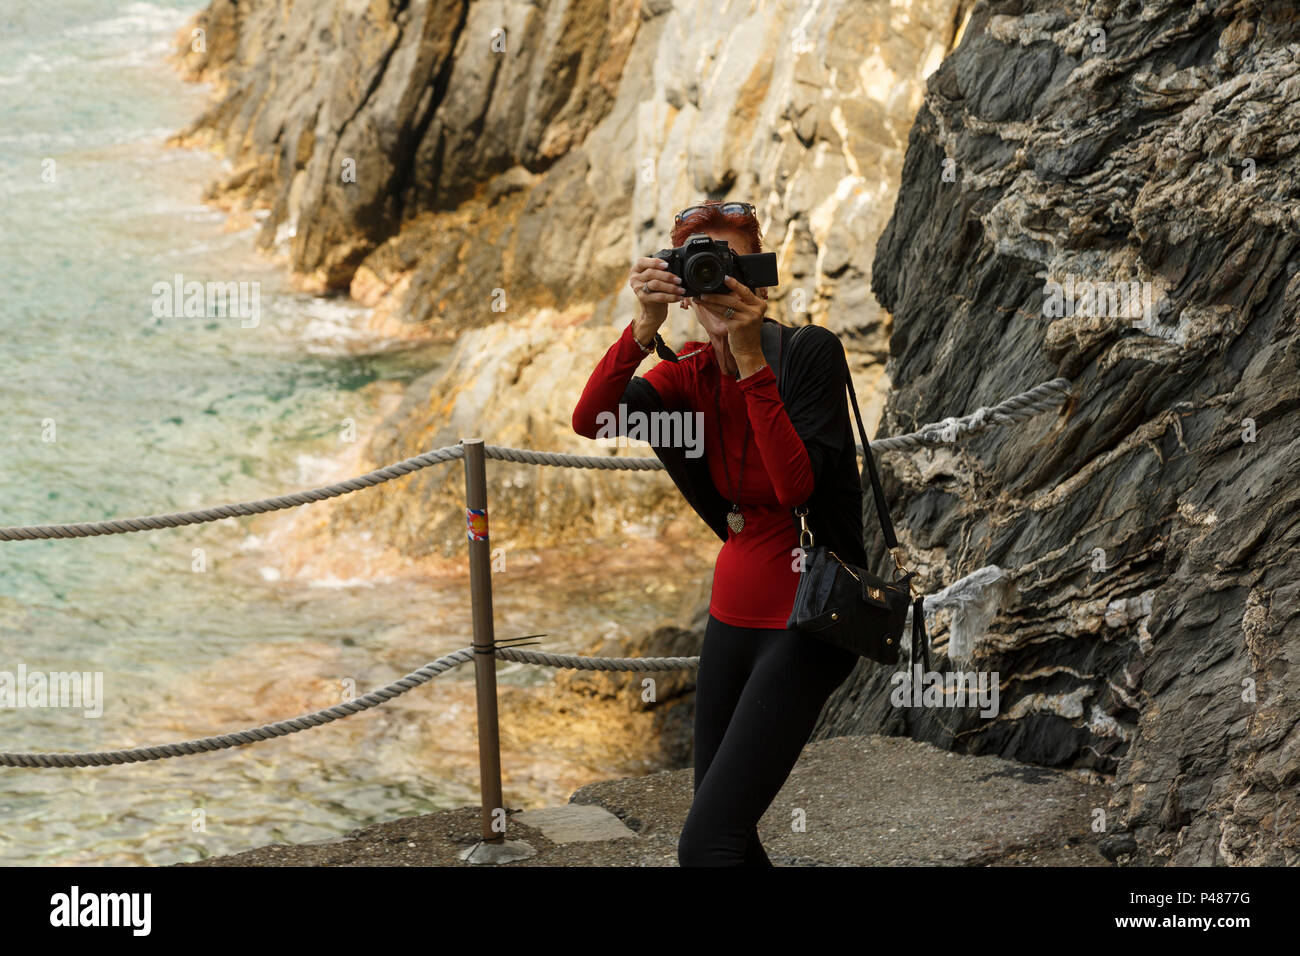 Solo female tourist photographer-videographer candidly shooting against rocky seacoast background, Manarola, Cinque Terre, Italy - Stock Image